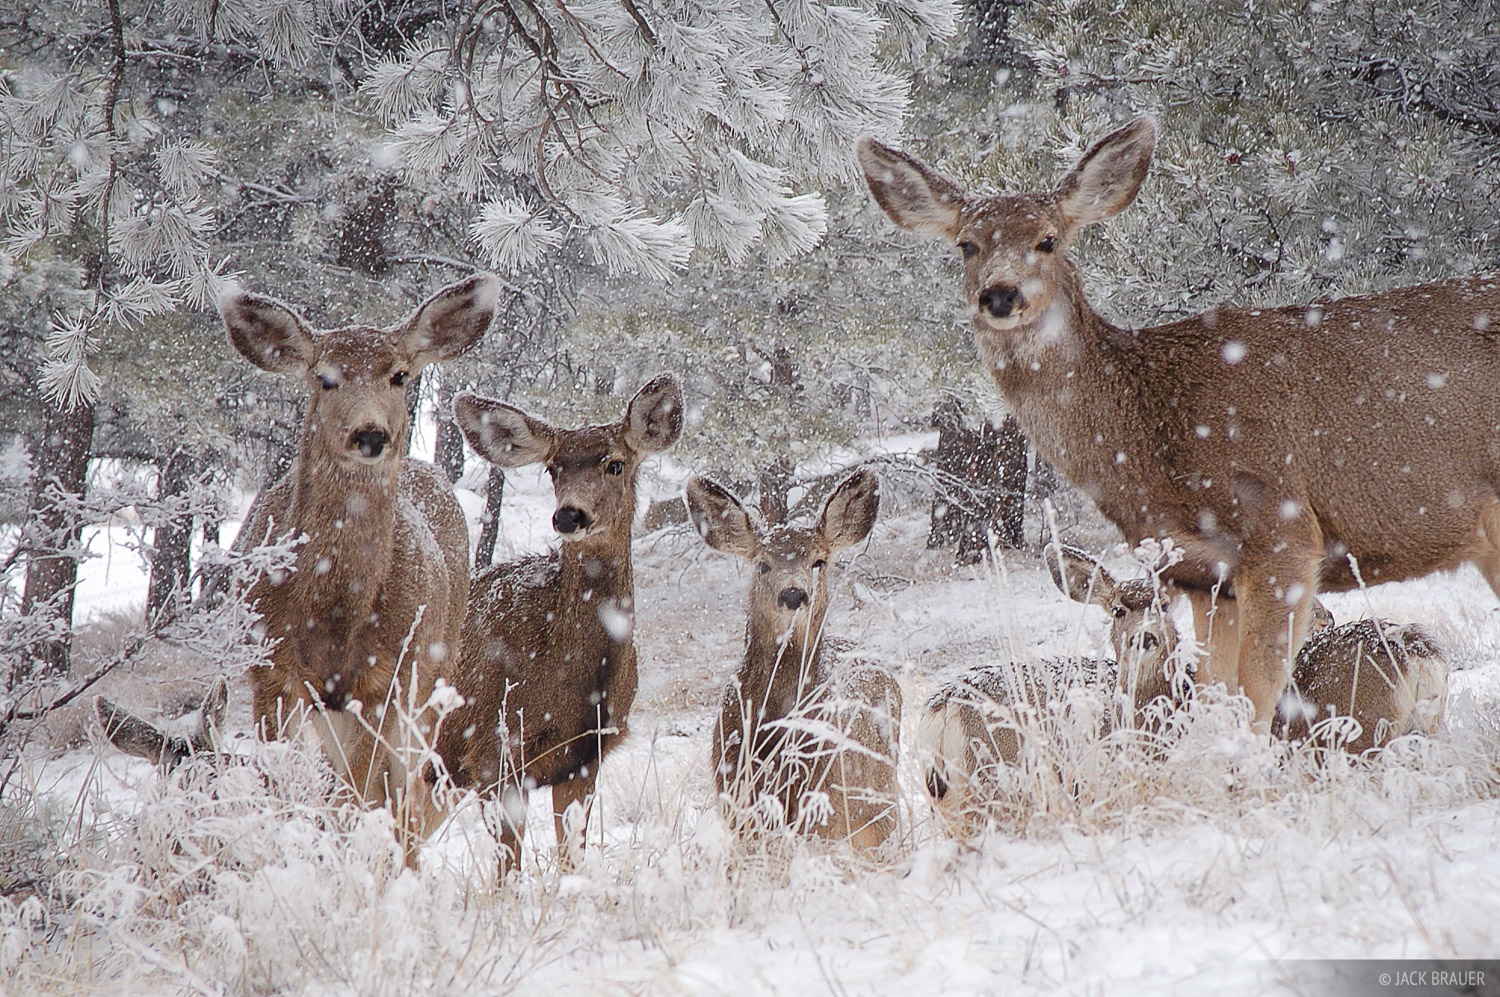 snowy deer, Front Range, Boulder, Colorado, photo